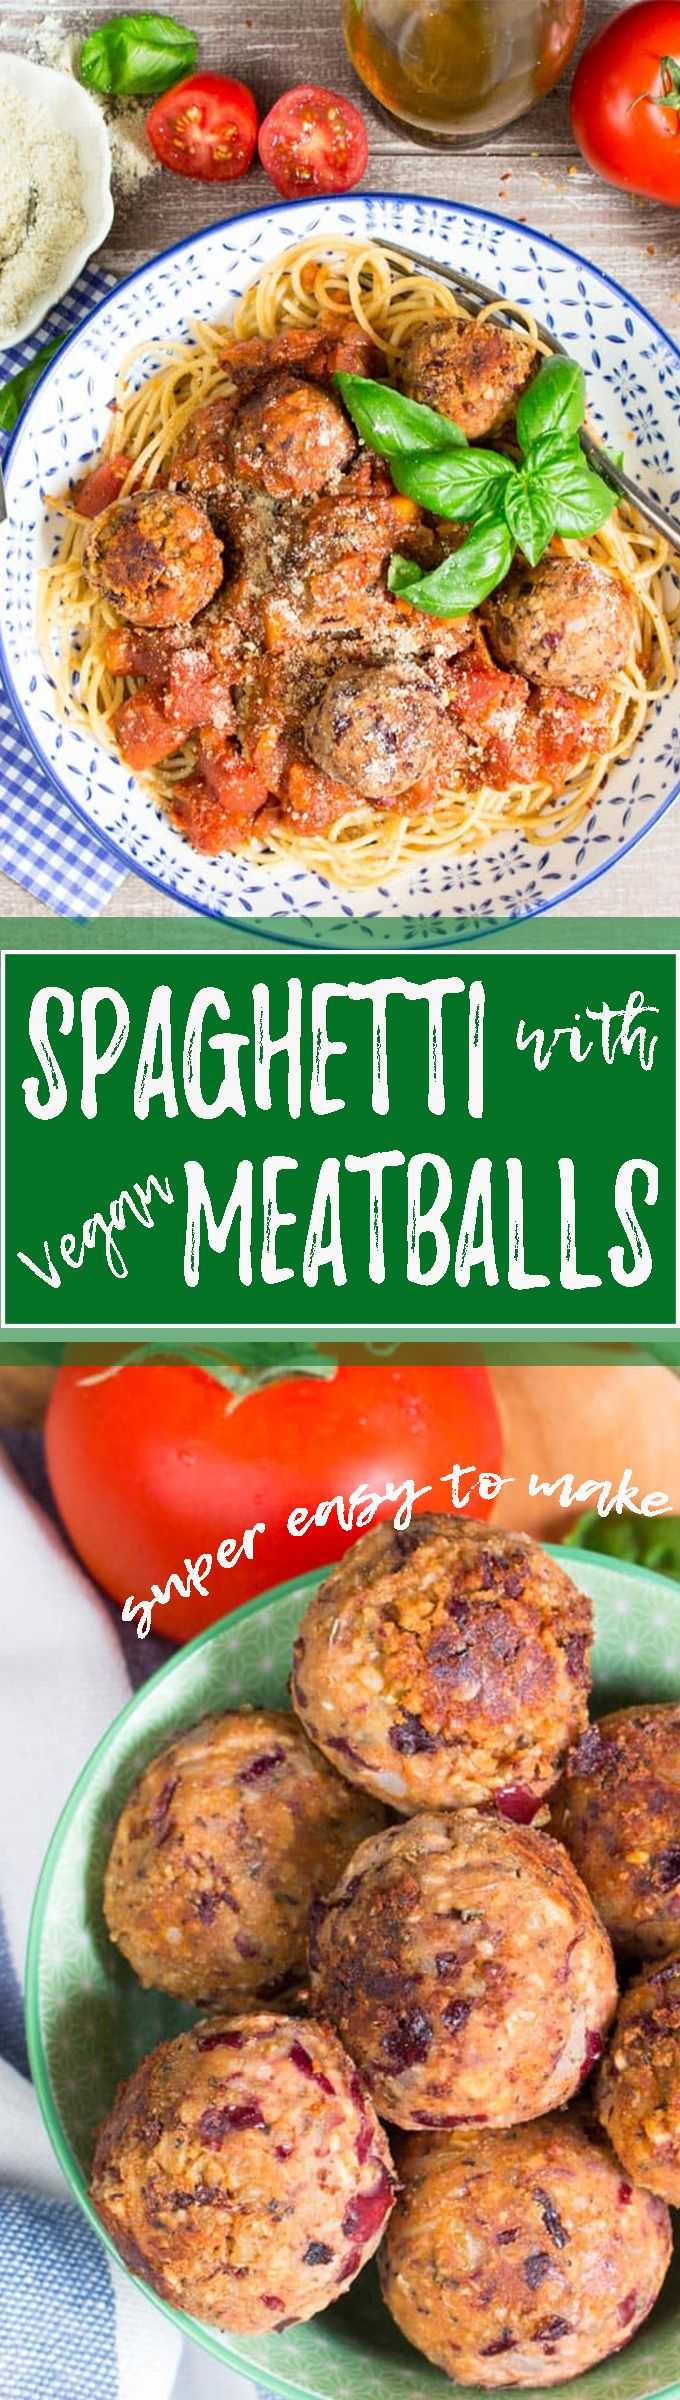 These spaghetti with vegan meatballs are one of the best vegan pasta dishes I've ever had!! And you won't believe how easy the recipe is! It only takes 30 minutes to make. <3 | veganheaven.org